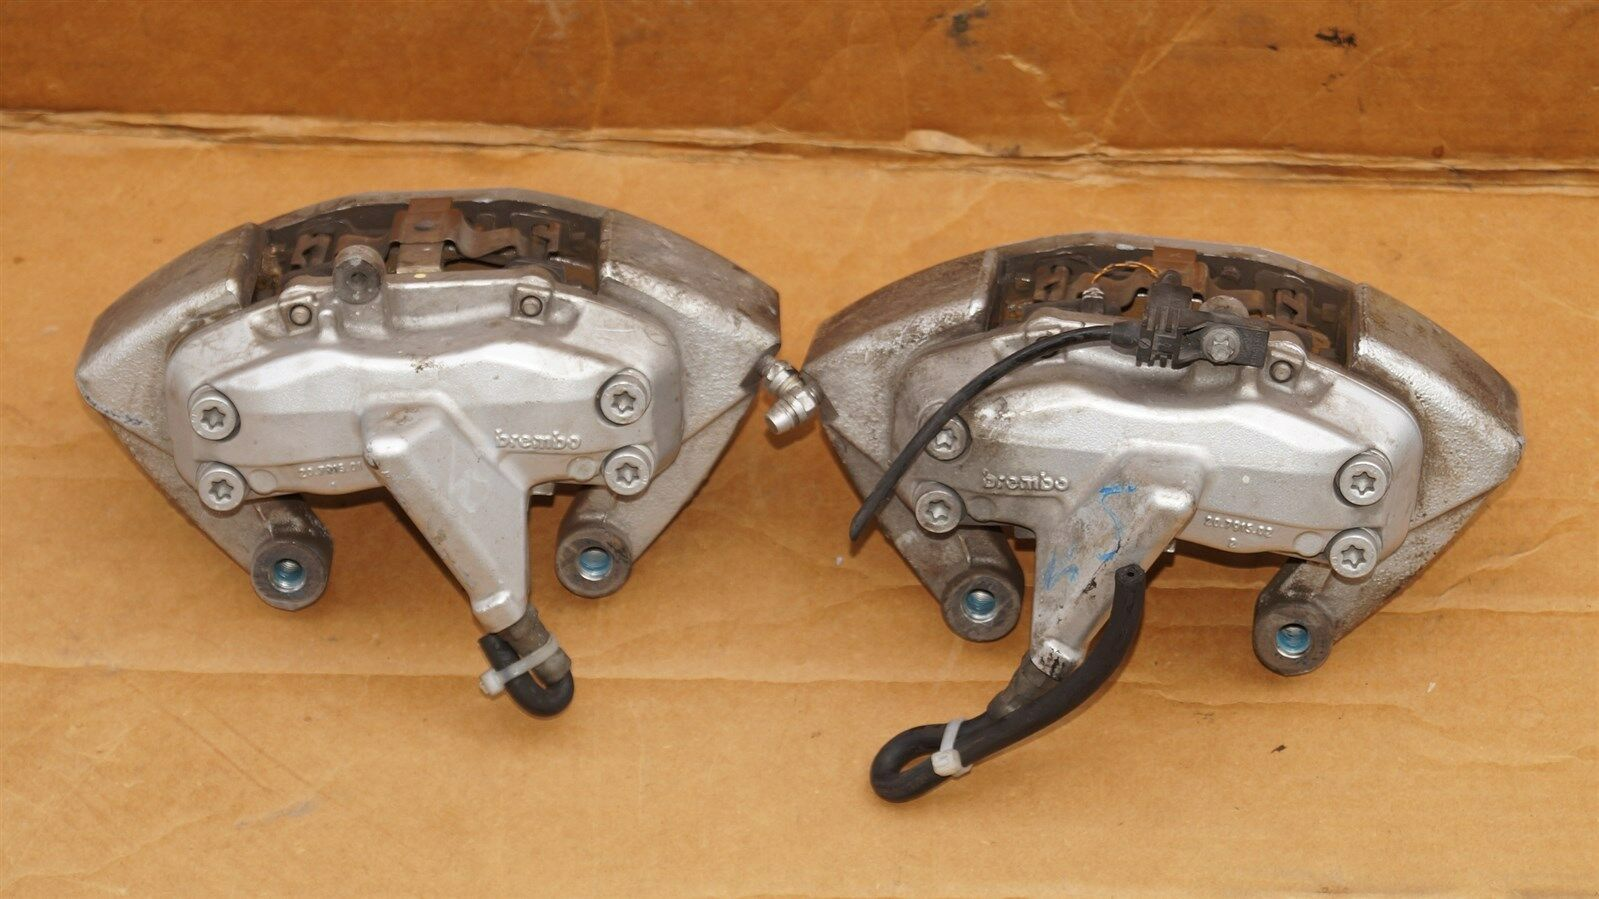 06 Mercedes C55 AMG Brembo Front Brake Caliper Set LH & RH